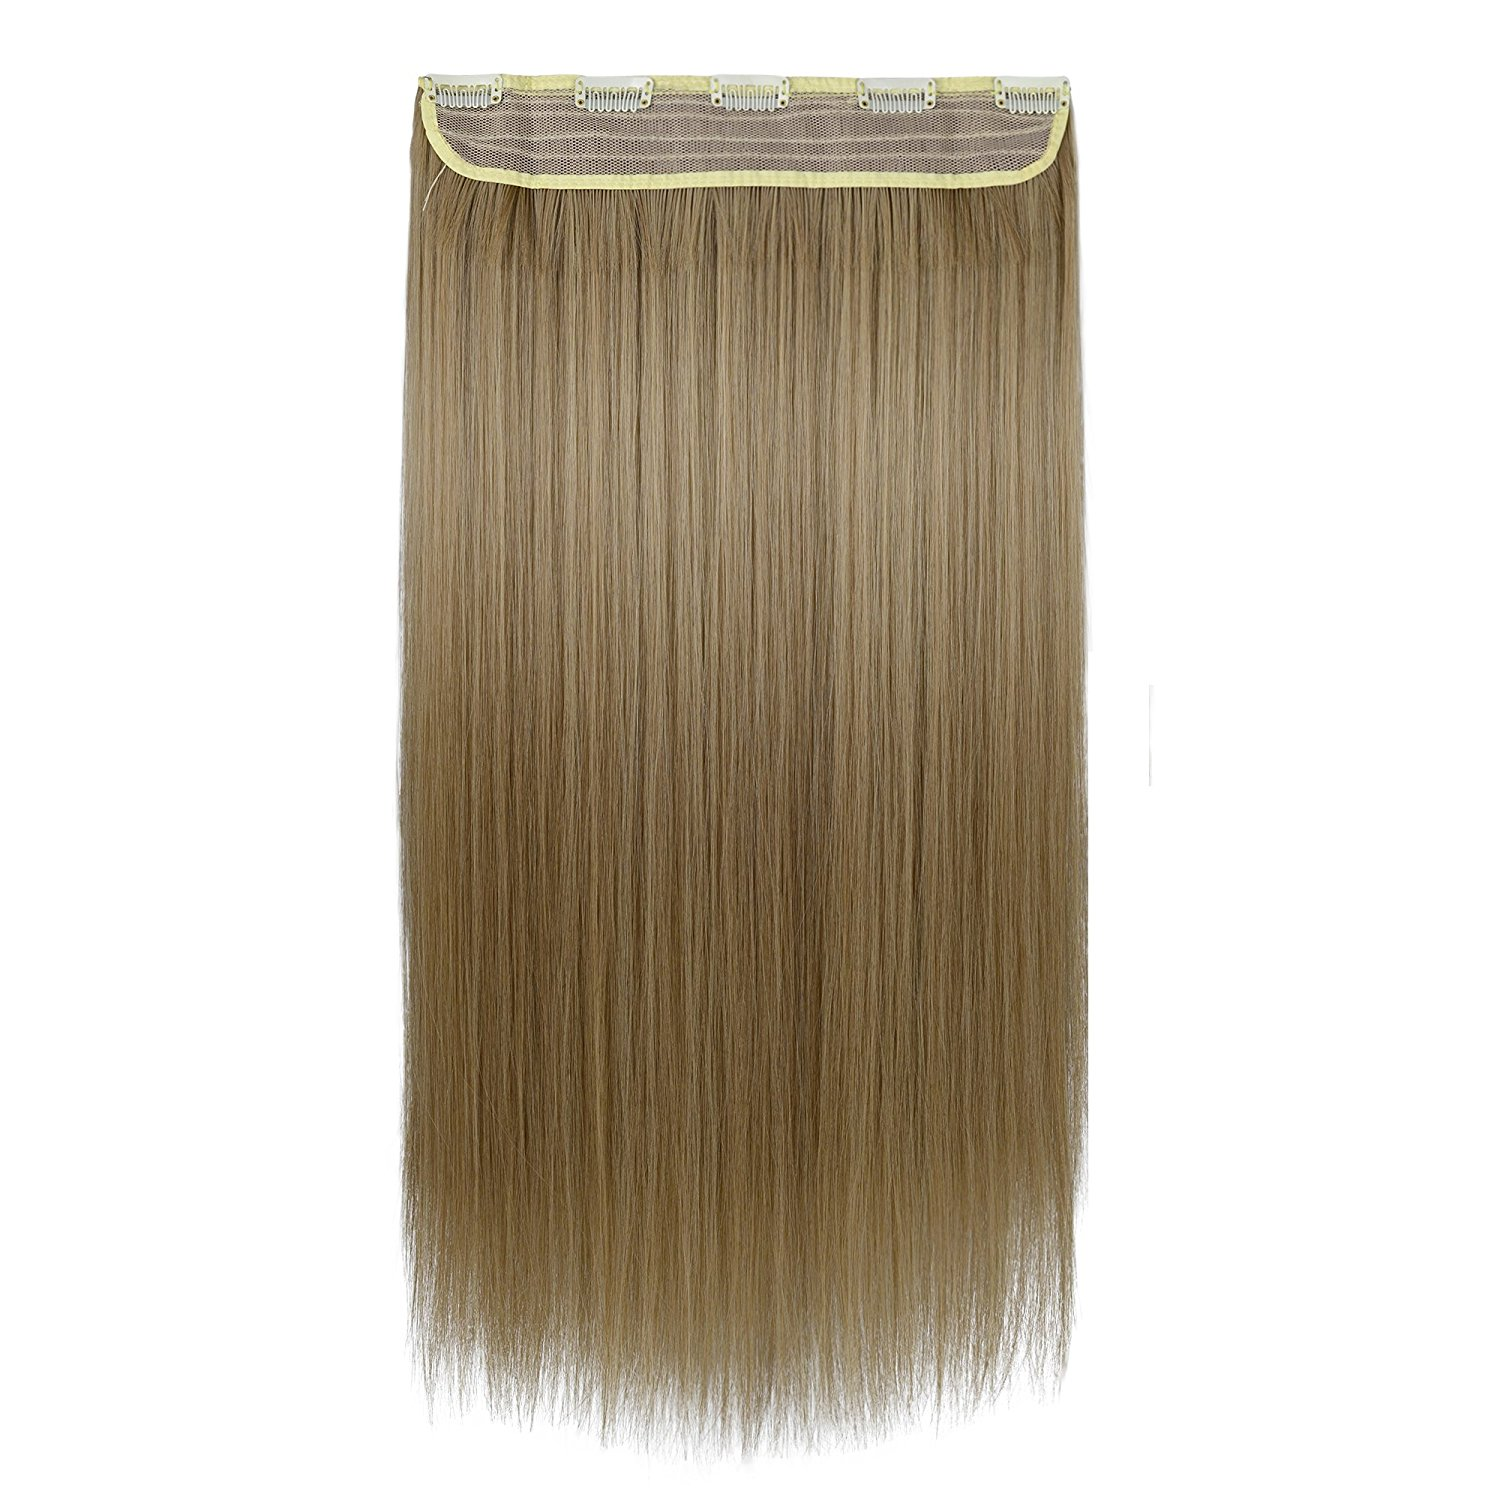 Feshfen 24 one piece 34 full head clip in hair extensions long feshfen 24 one piece 34 full head clip in hair extensions long straight pmusecretfo Gallery